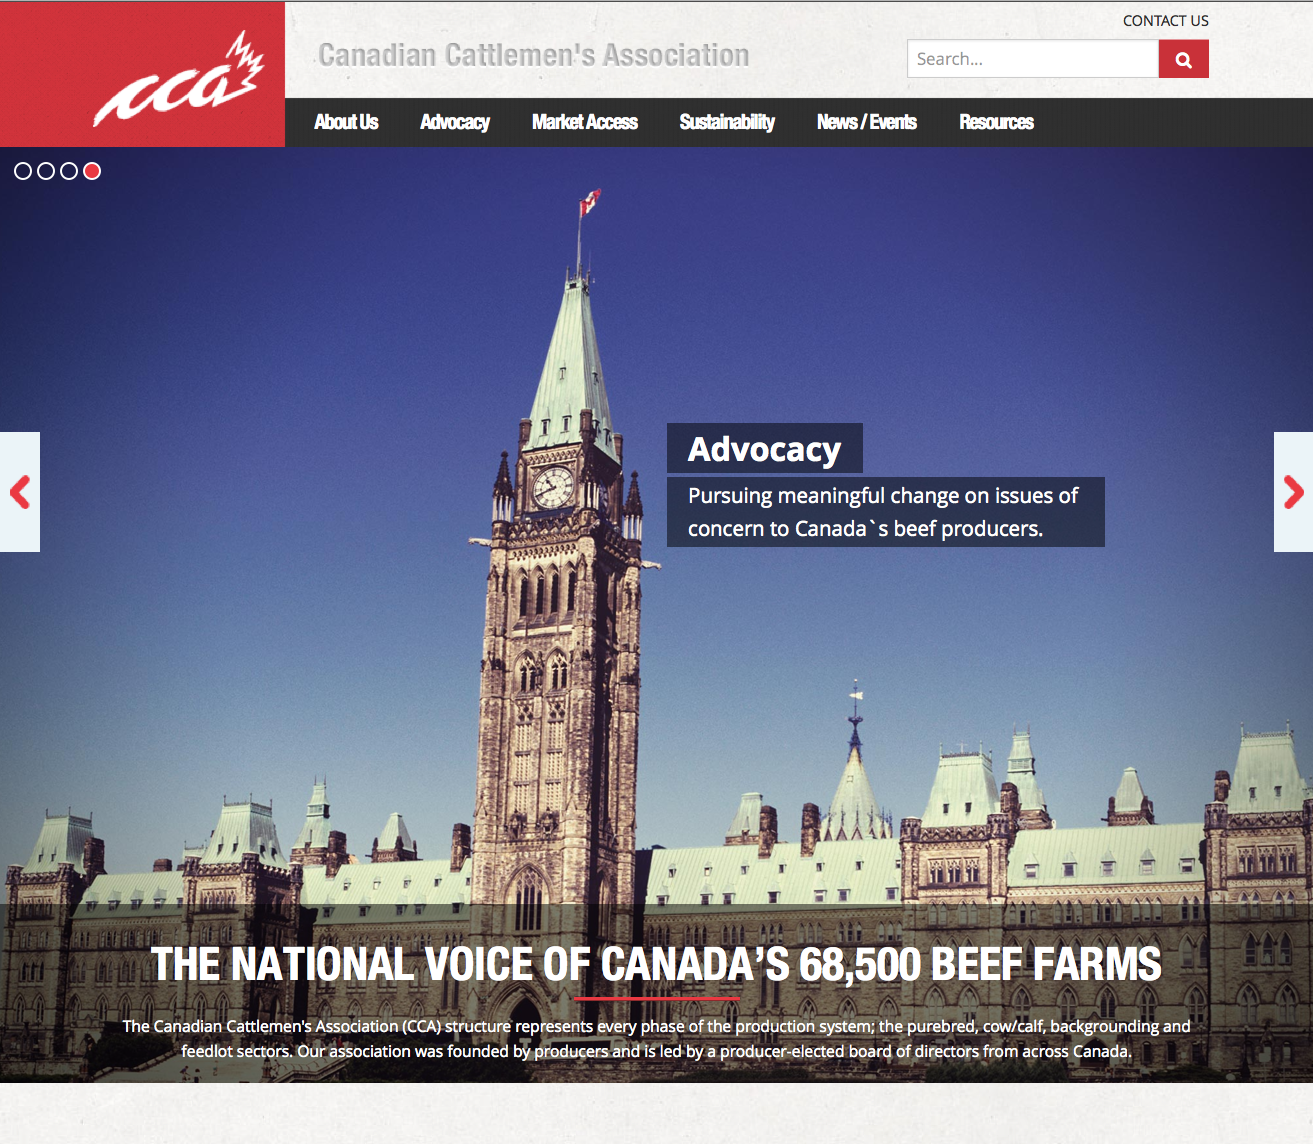 The Canadian Cattlemen's Association (CCA) (icona)